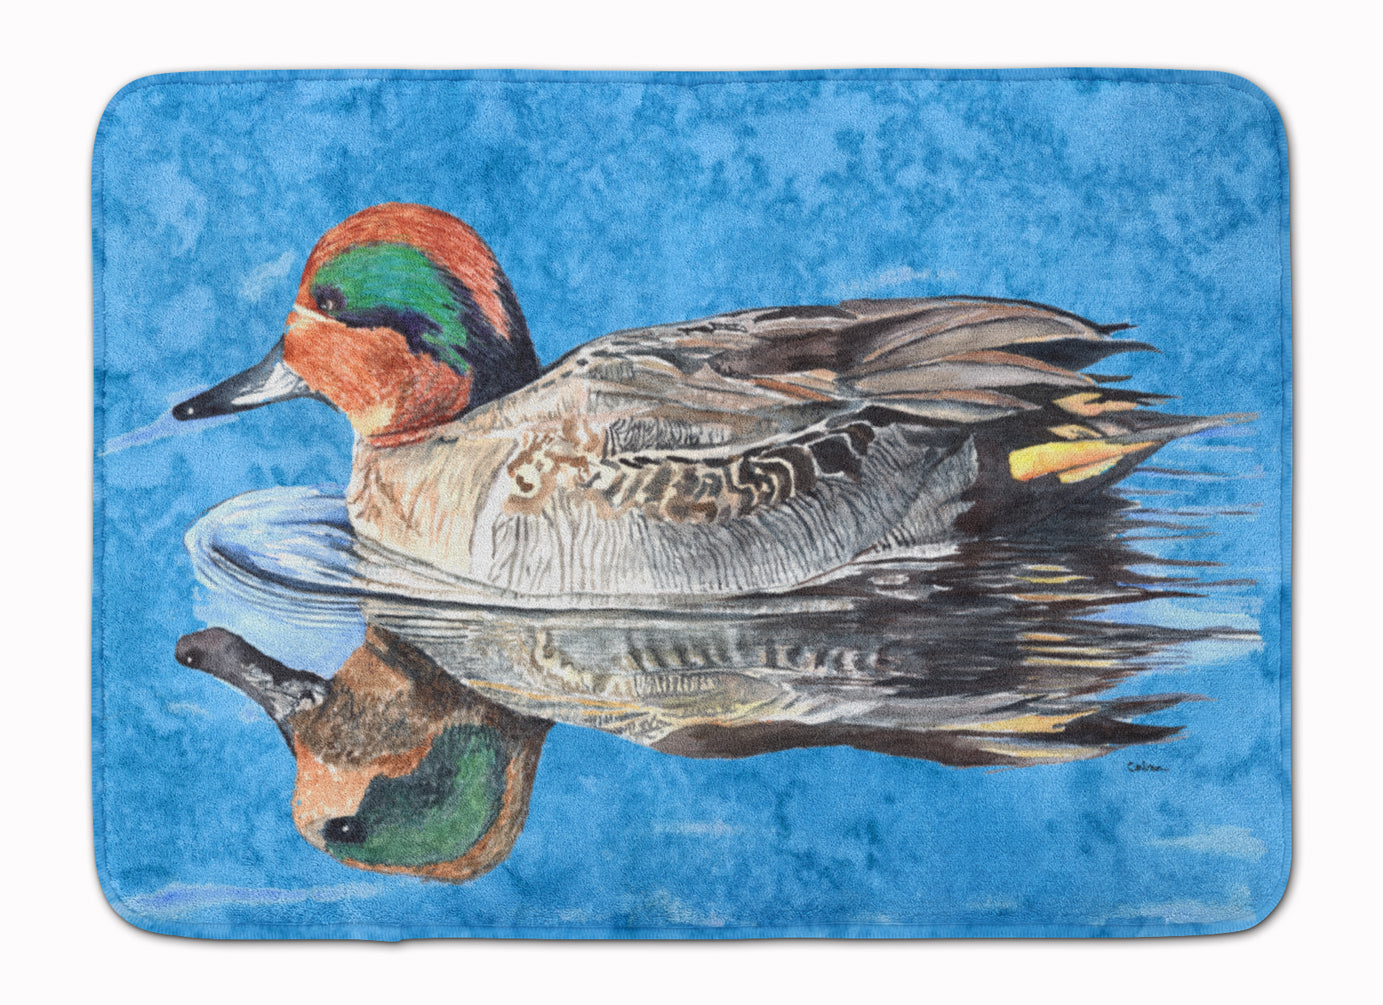 Teal Duck Machine Washable Memory Foam Mat 8830RUG by Caroline's Treasures